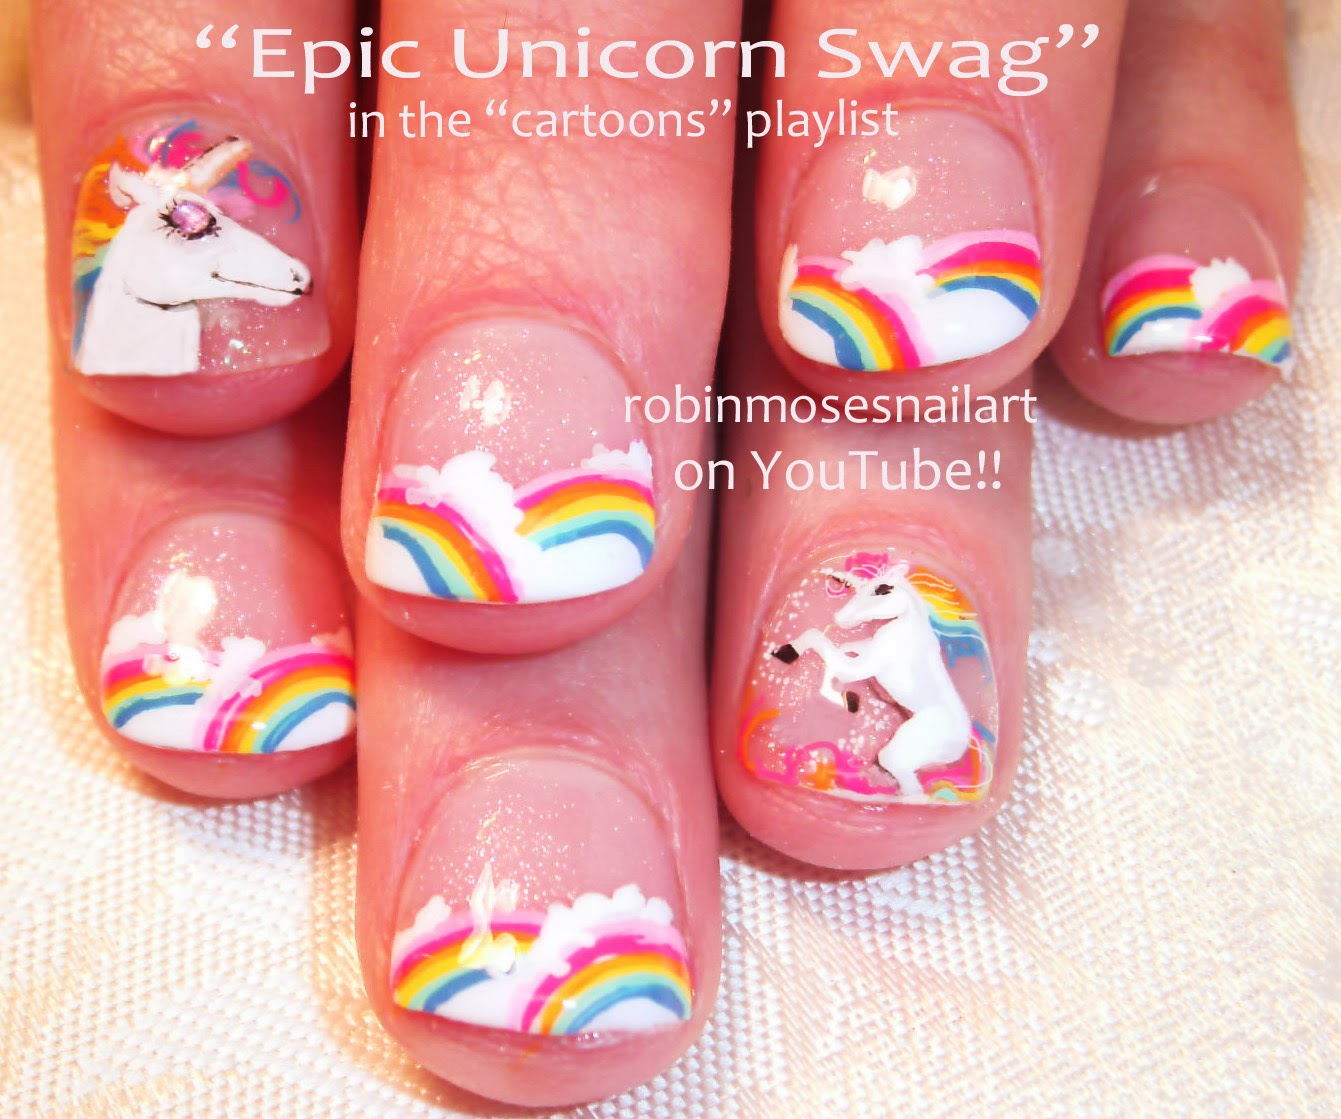 Strawberry Shortcake Nails Rainbow Brite Unicorn Nailuch Much More On My Playlist Of Cartoons Logos And Faces Right Here